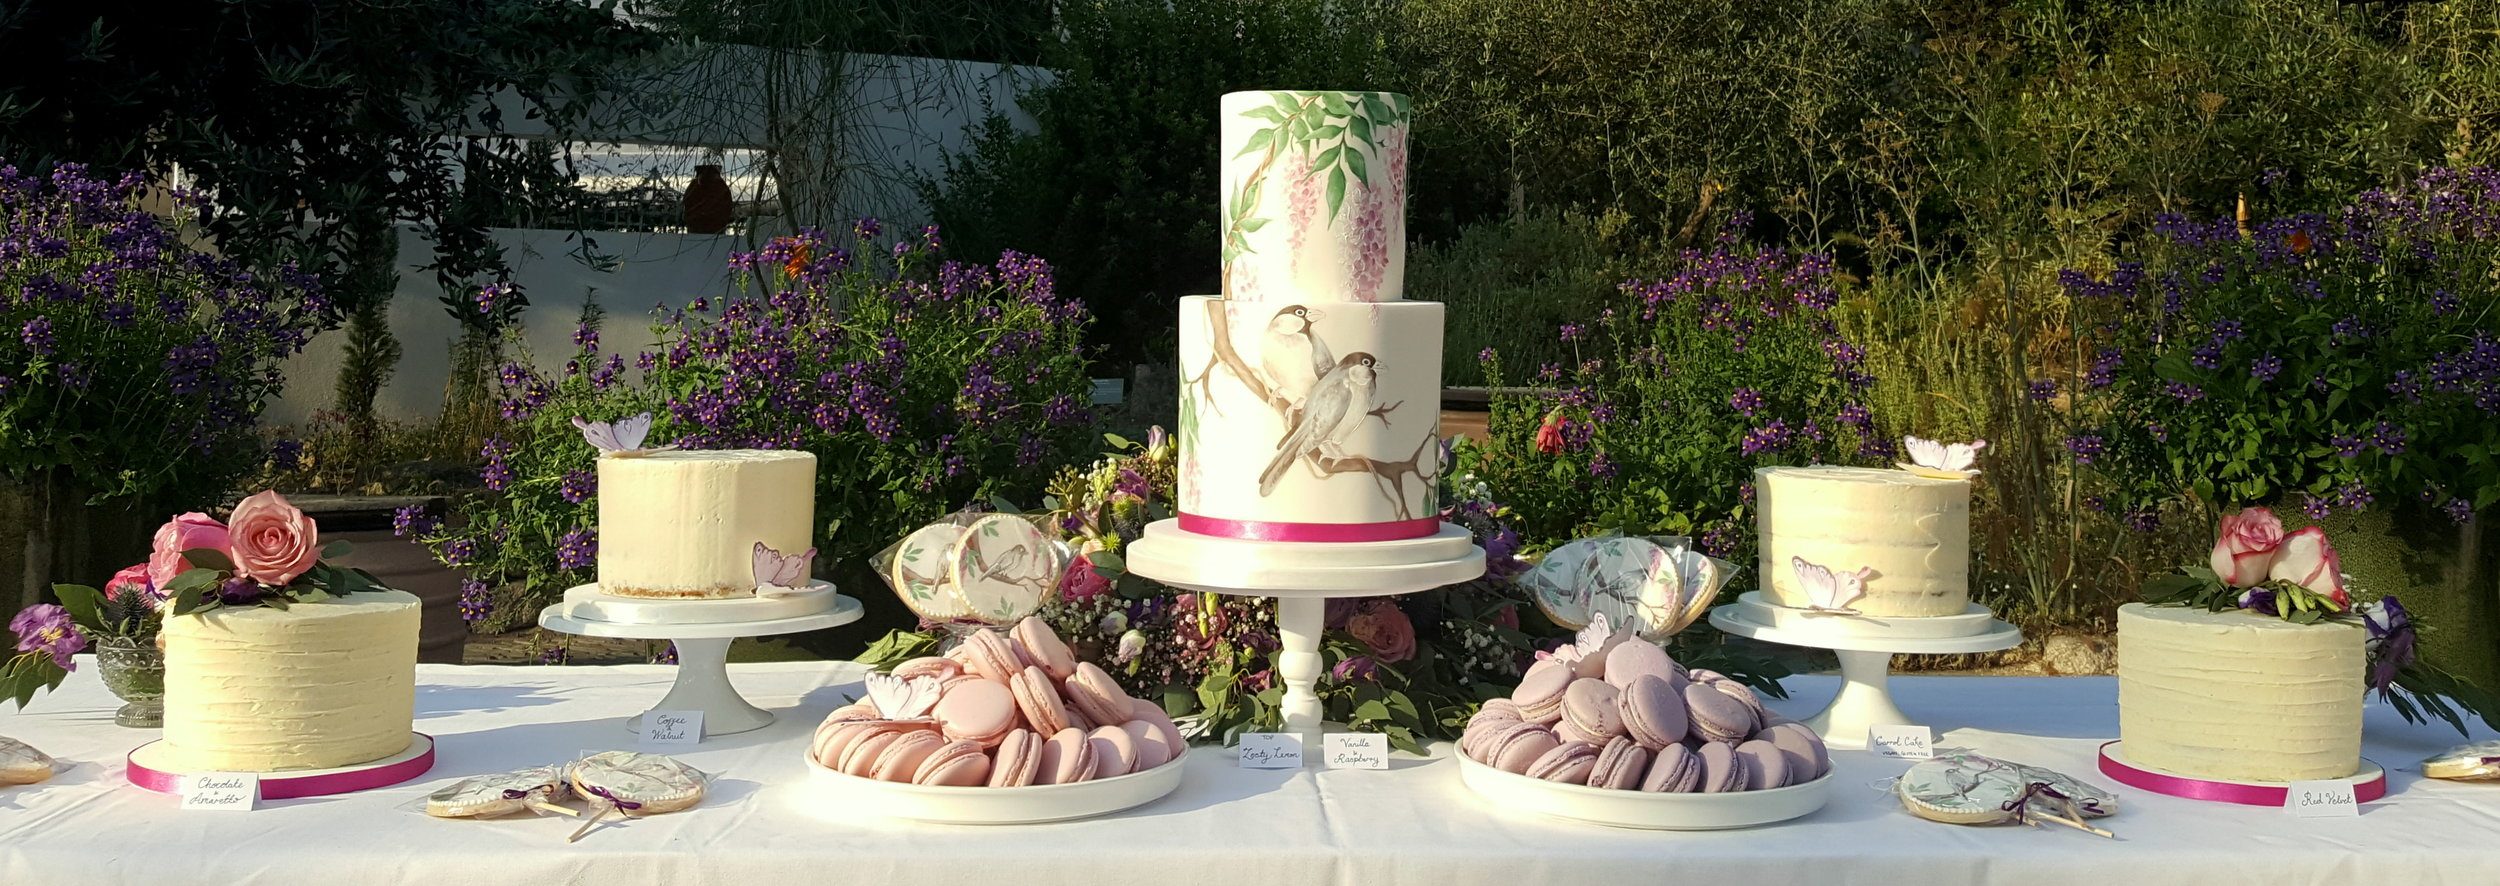 Cake table with hand painted Japanese bird print wedding cake